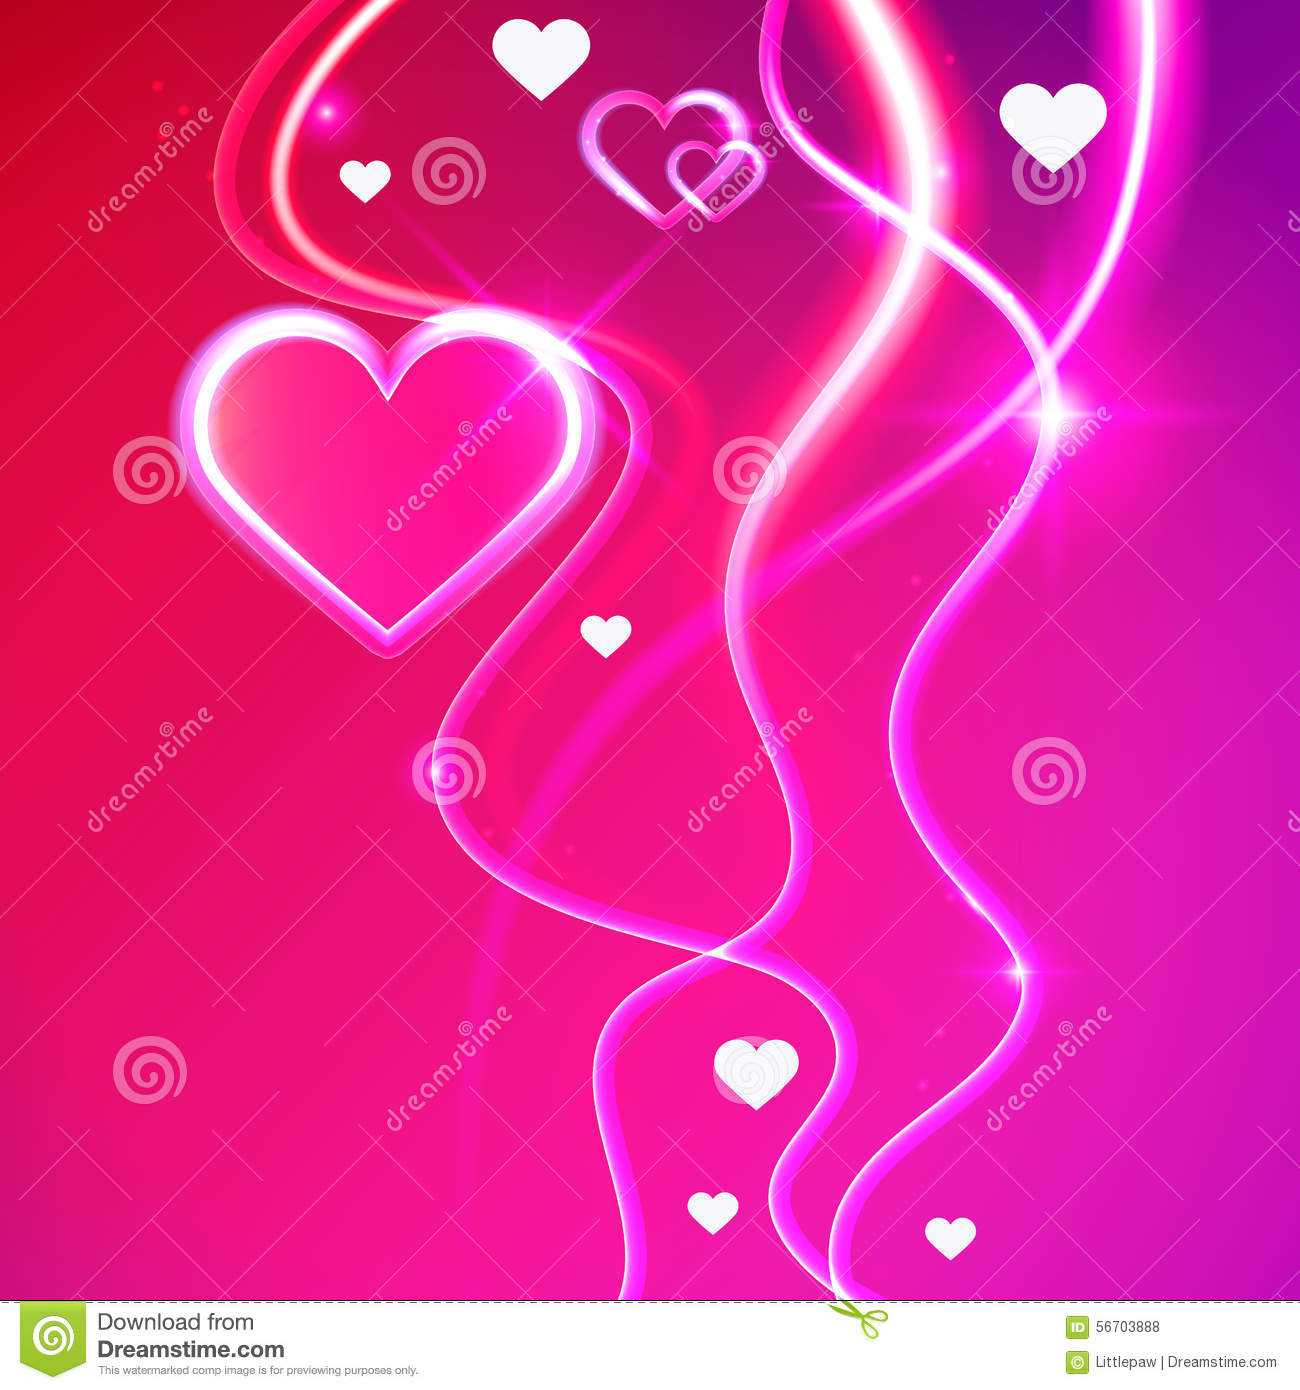 Love Heart Wallpaper Animation Love Vector Background Glowing Pink Hearts Stock Vector